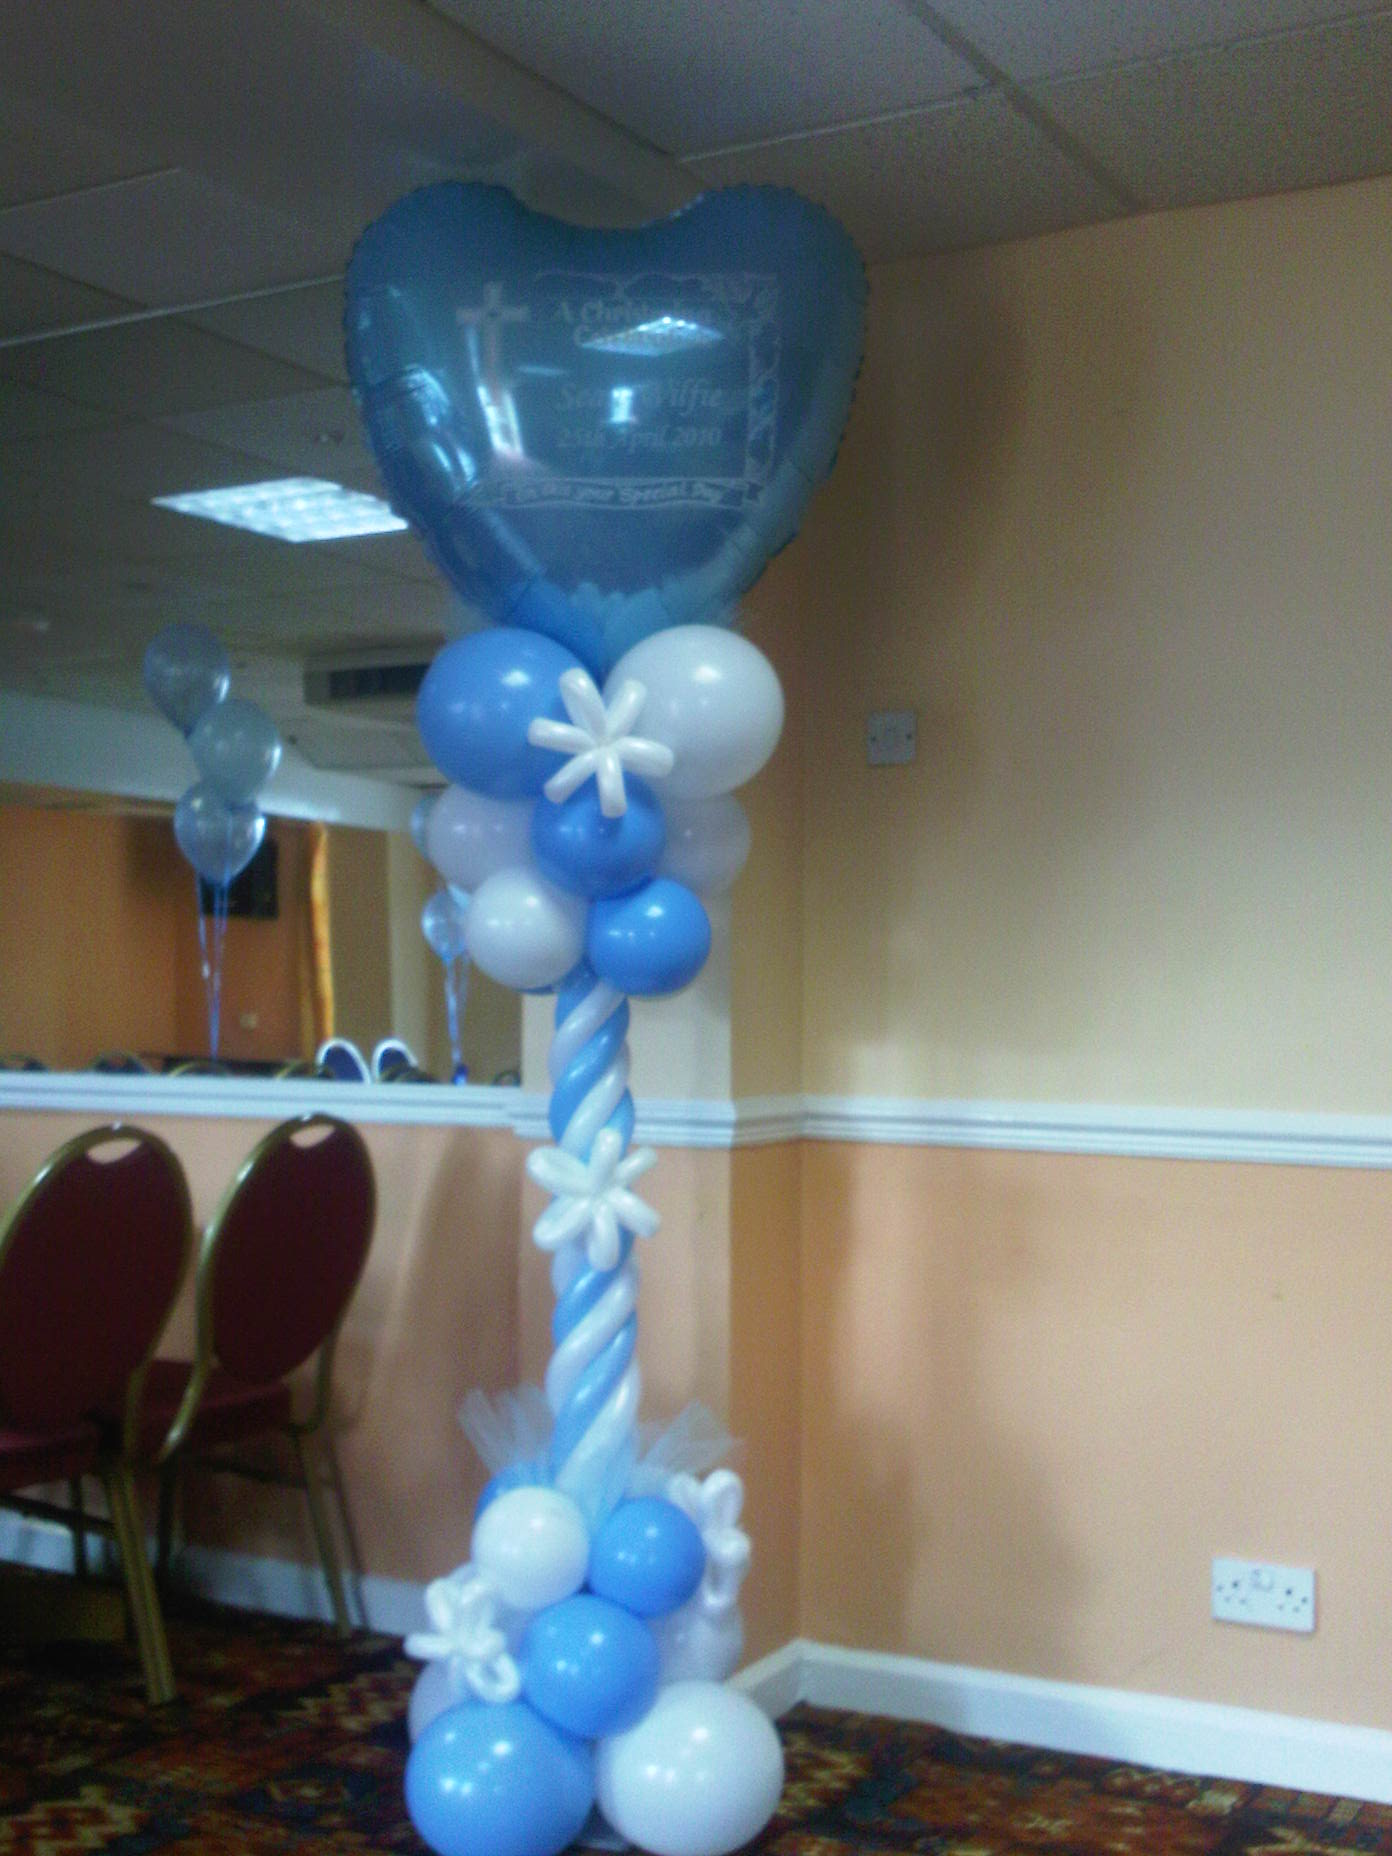 Special occasion foils at sean wilfie s christening for Balloon decoration ideas for christening